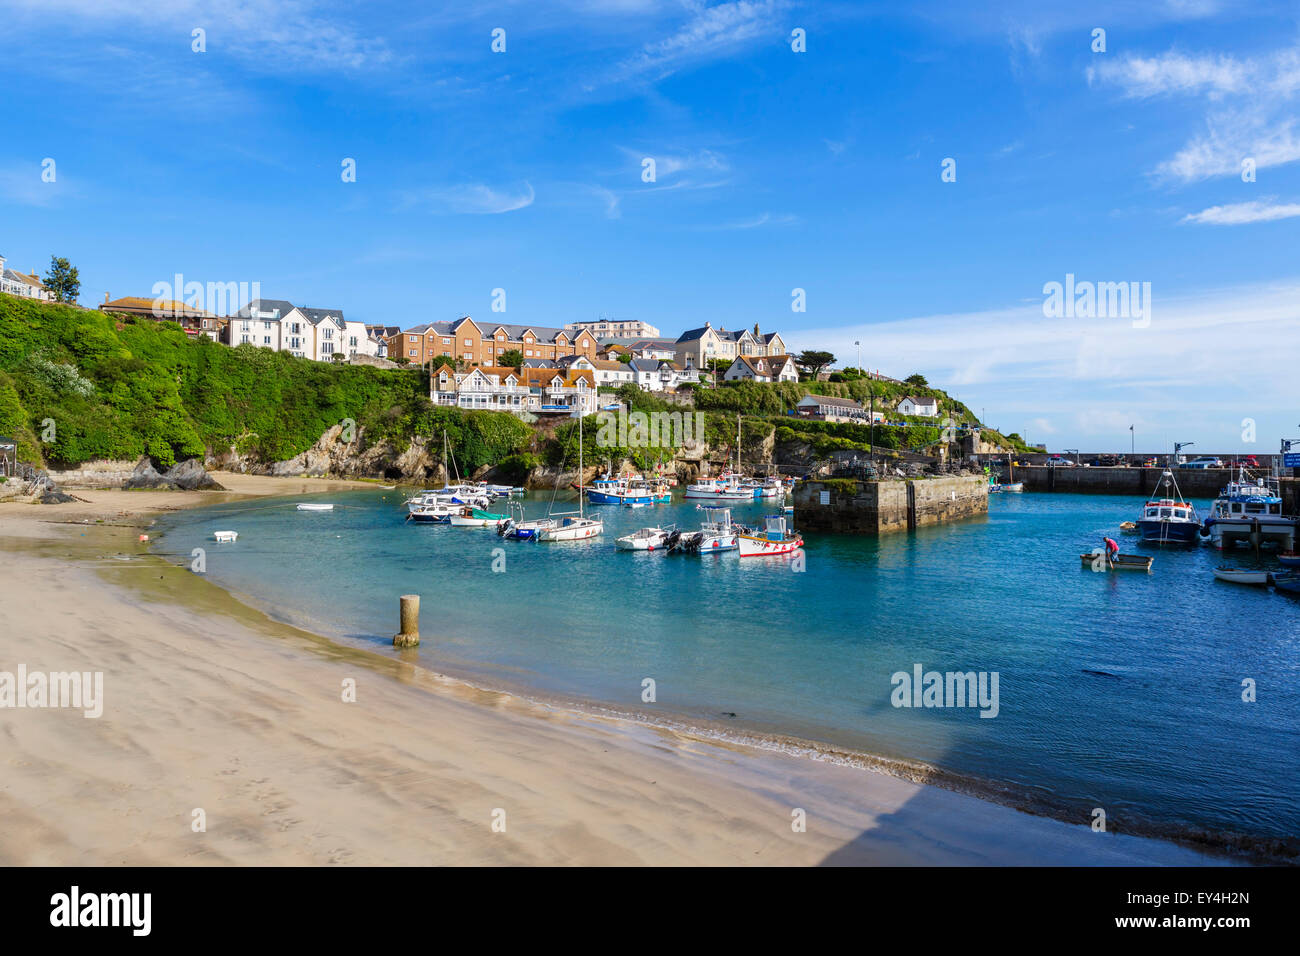 The harbour in Newquay, Cornwall, England, UK - Stock Image